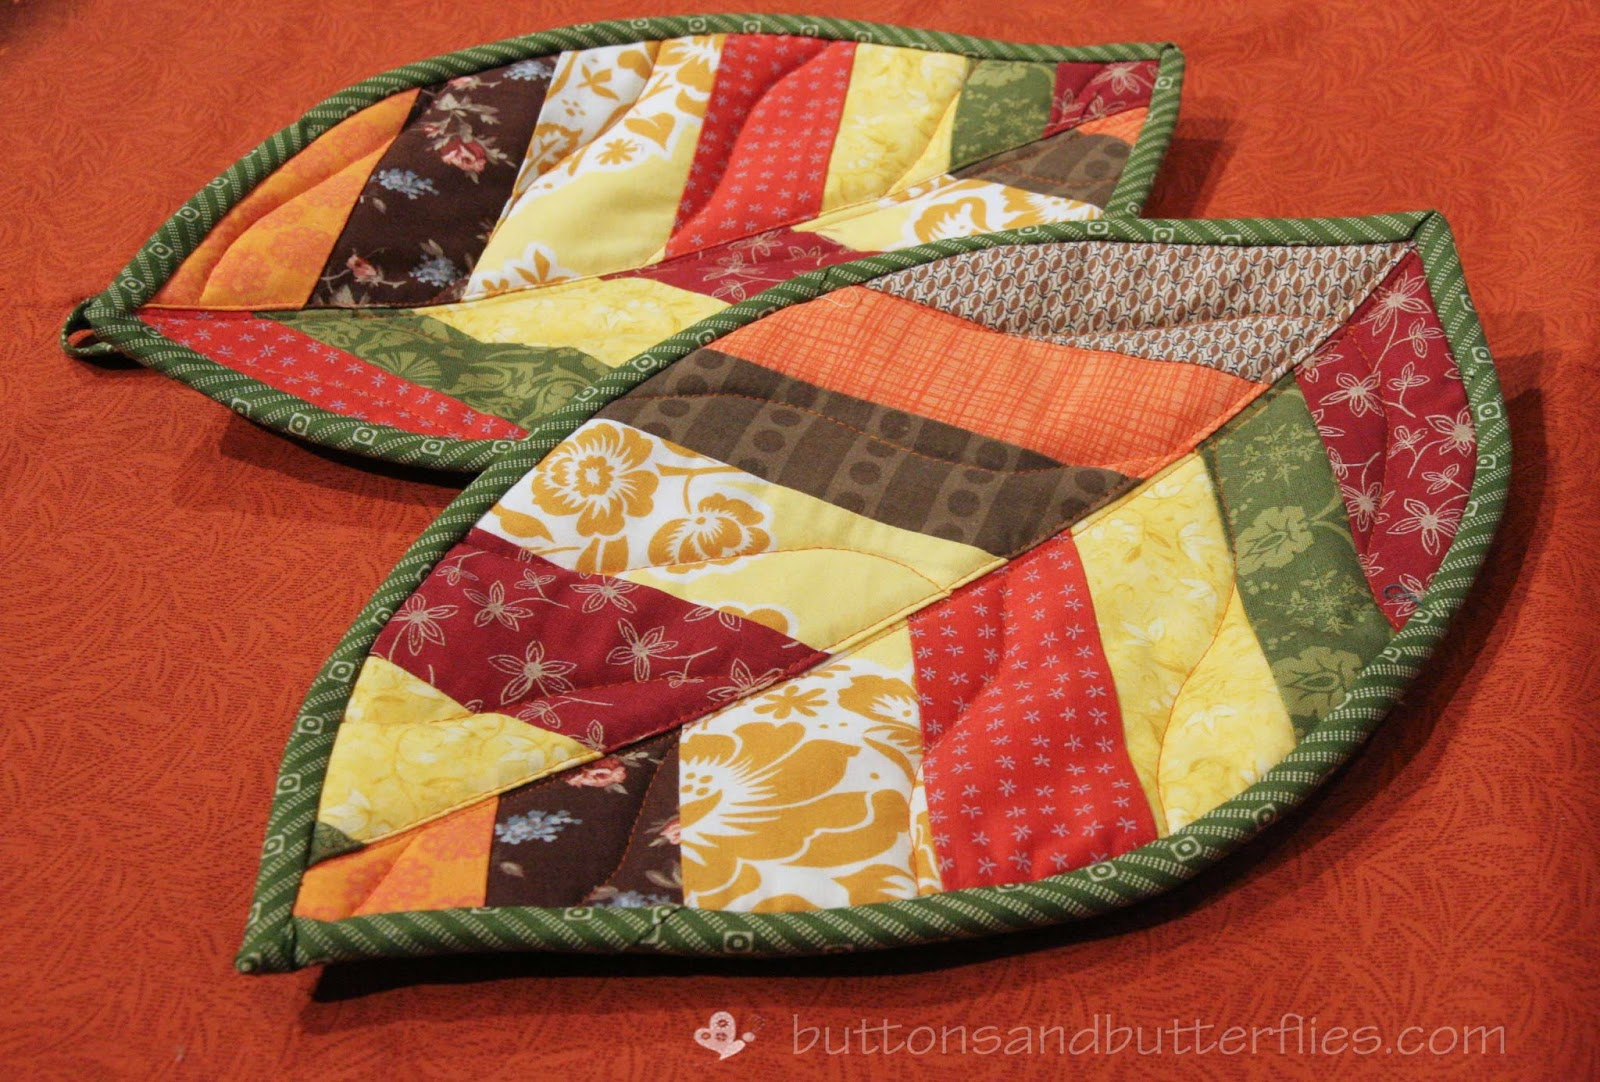 Buttons and Butterflies: Quilted Leaf Potholders {Tutorial} : quilted potholders tutorials - Adamdwight.com